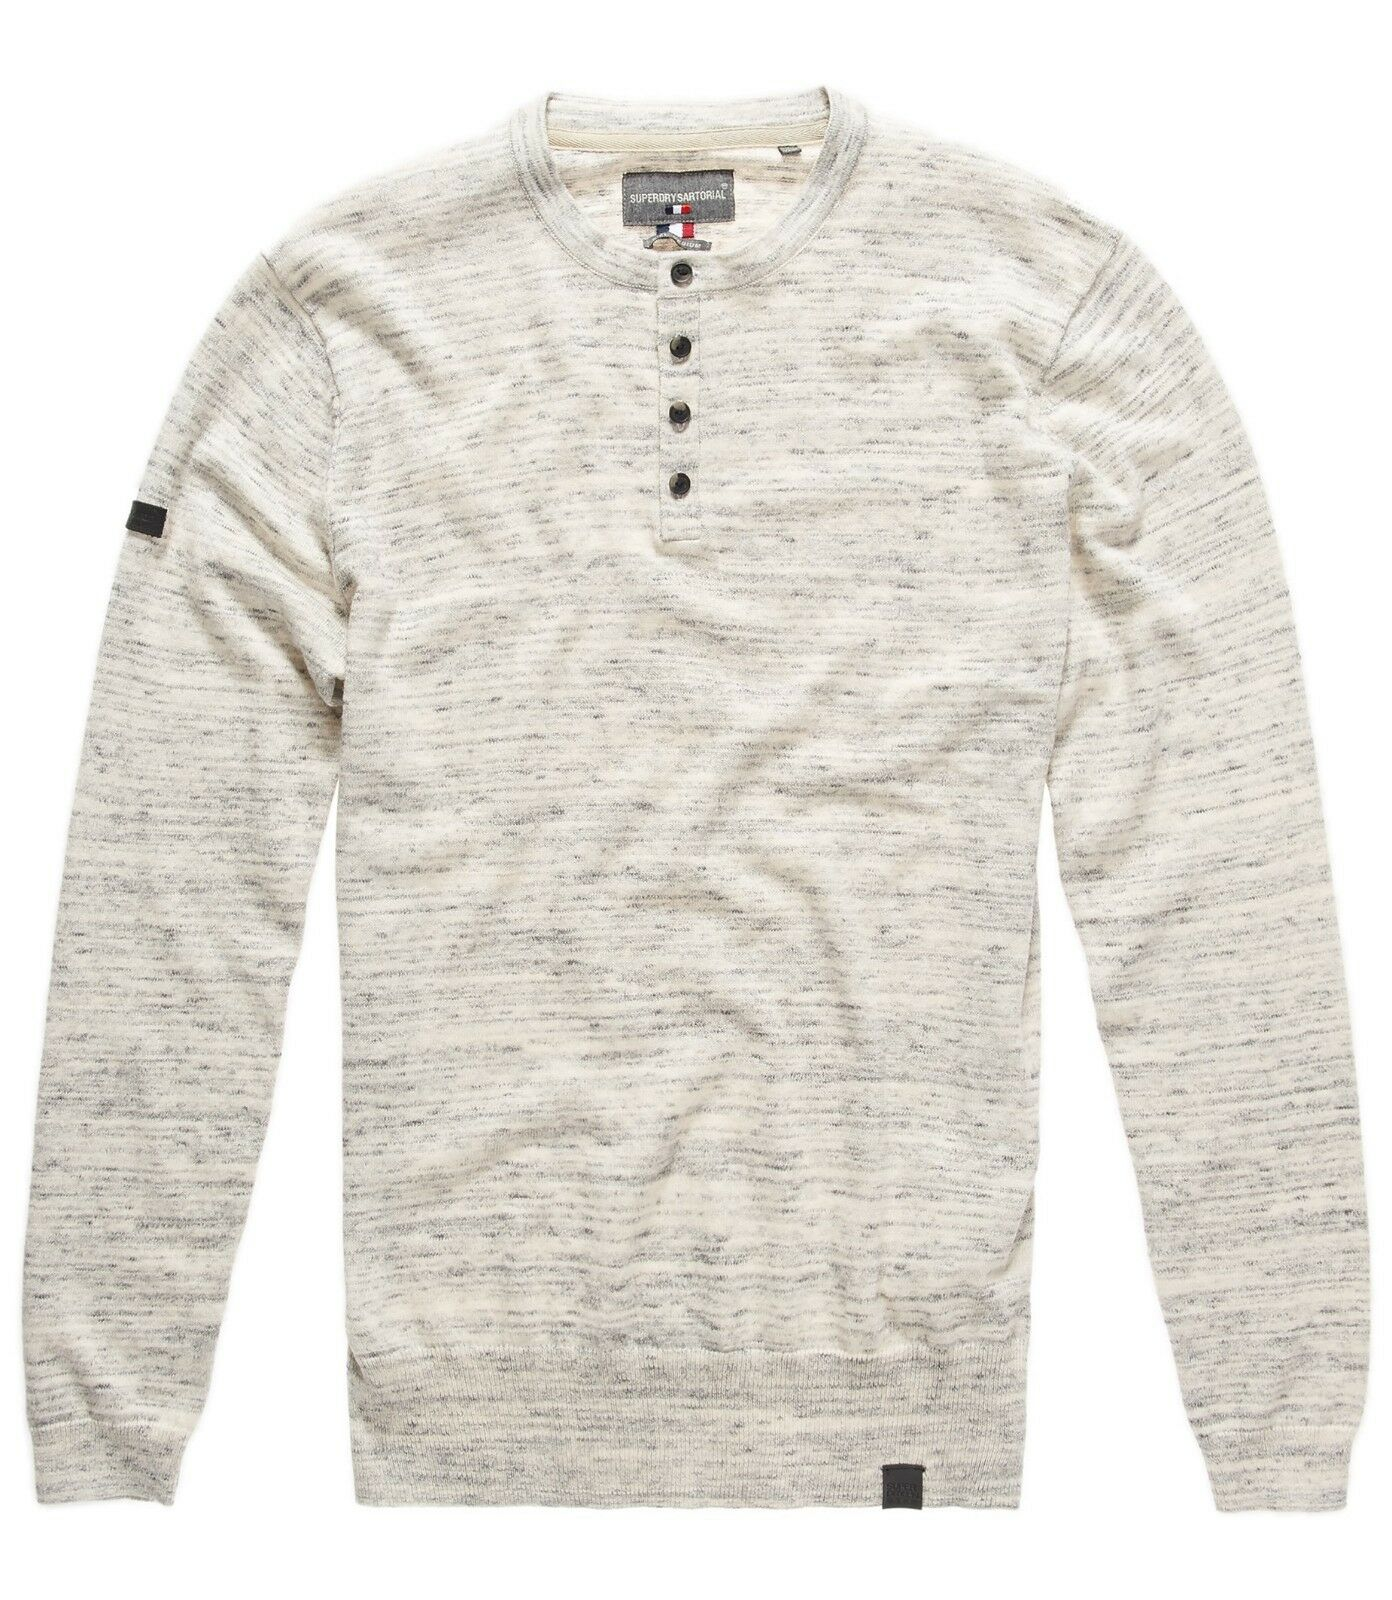 SUPERDRY orange LABEL GRANDAD Limestone Grindle